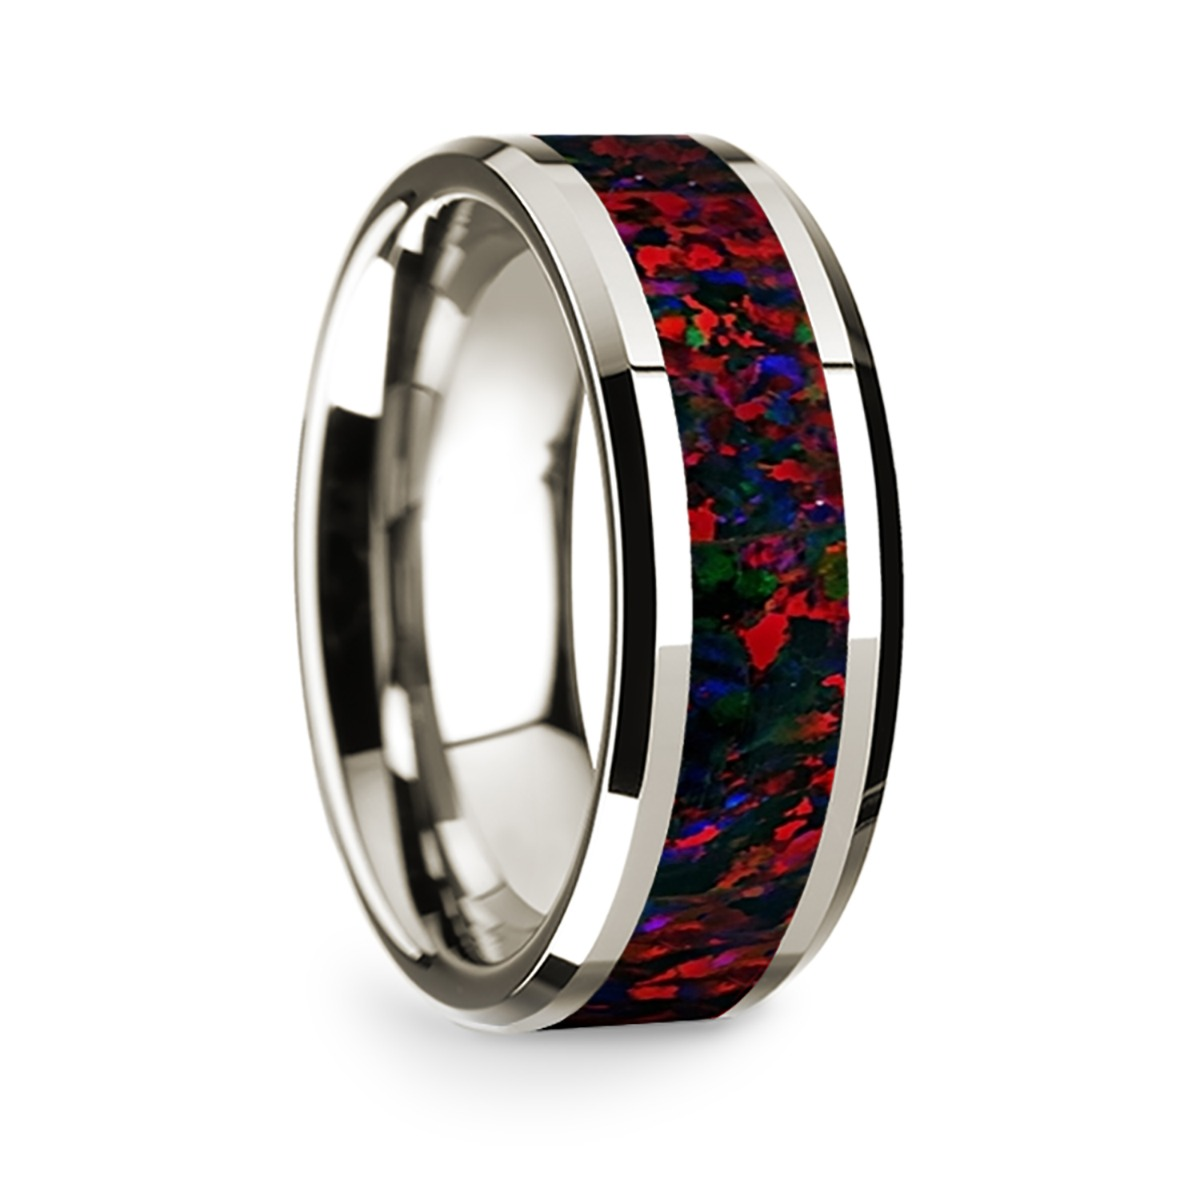 14k White Gold Polished Beveled Edges Wedding Ring with Black and Red Opal Inlay - 8 mm